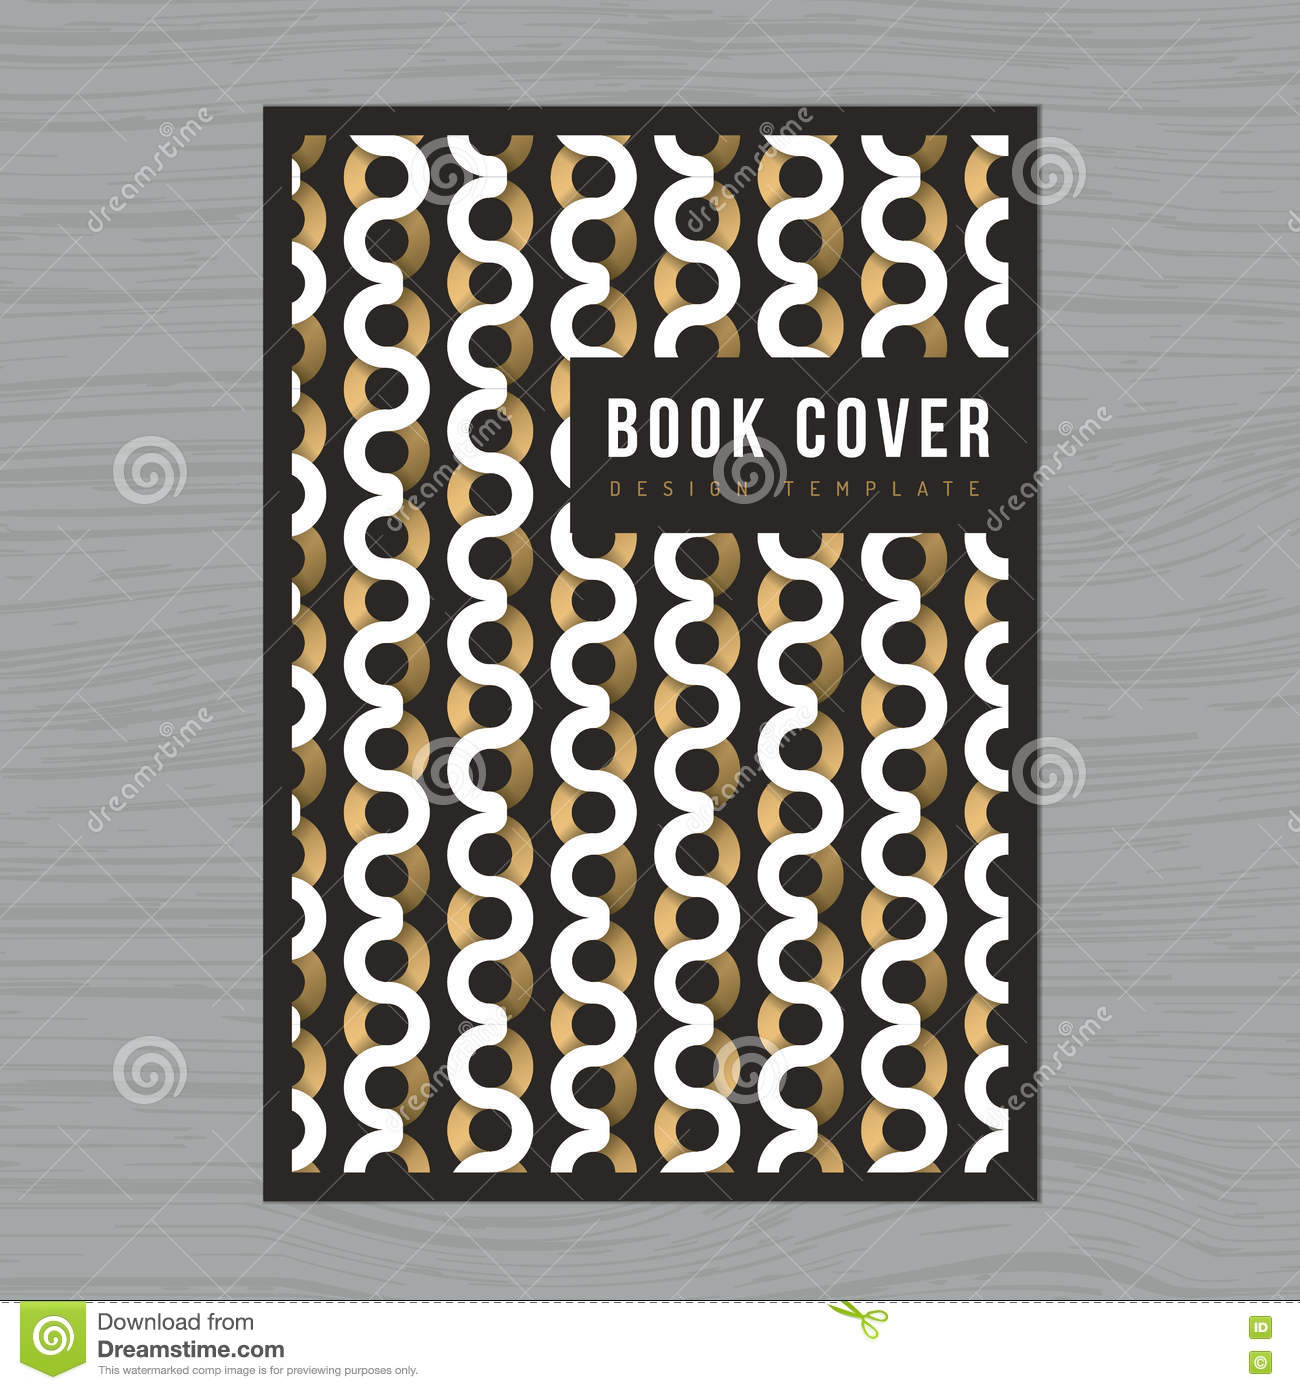 Book Cover Background Java : Abstract background for book cover poster flyer